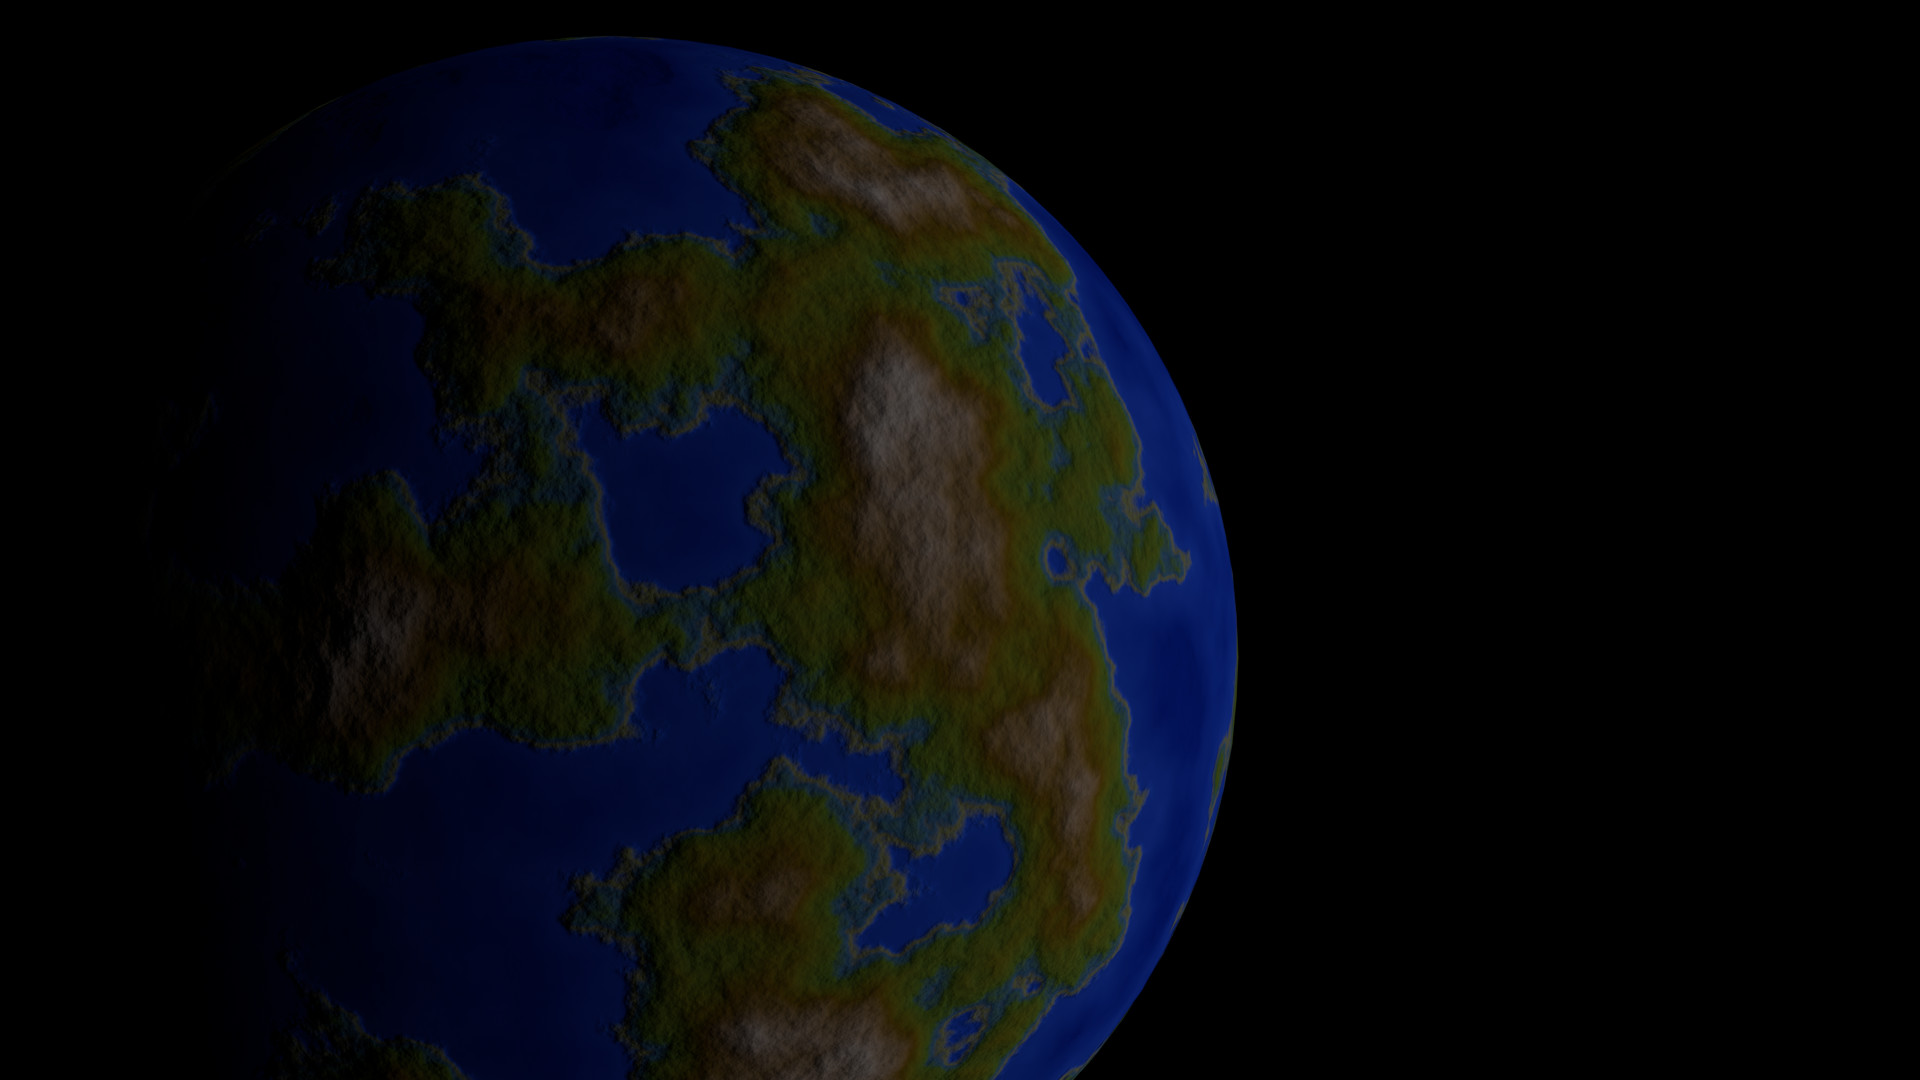 ArtStation - Blender procedural planet generator, Mario Dupuis